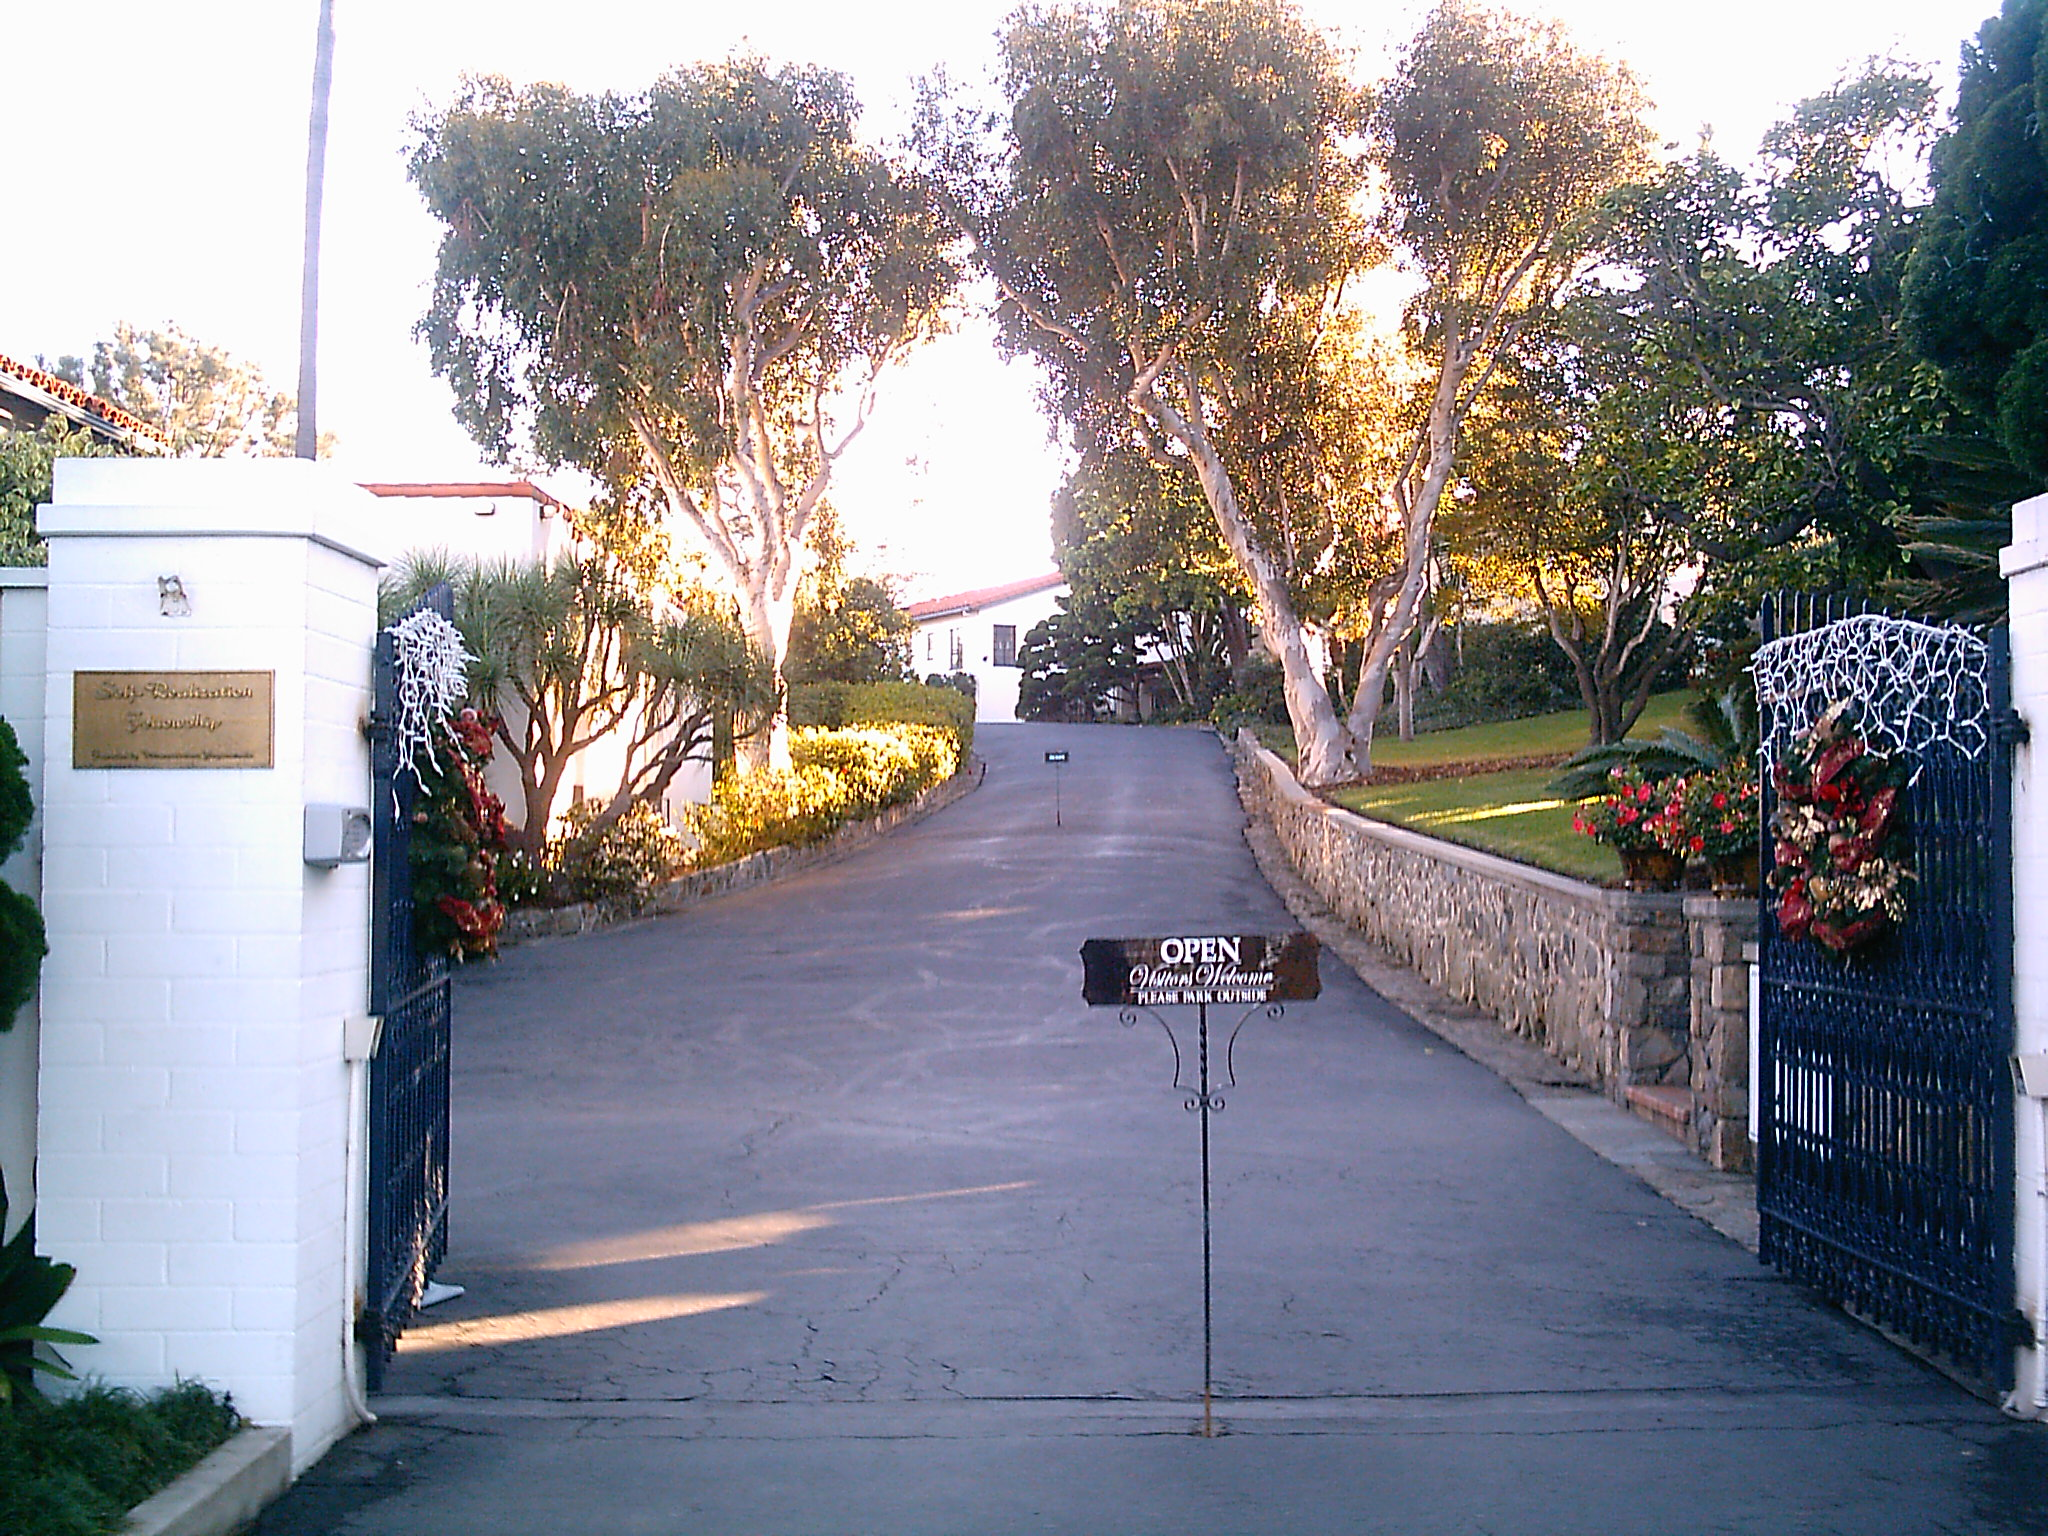 The entrance to the Self-Realization Fellowship Meditation Gardens,